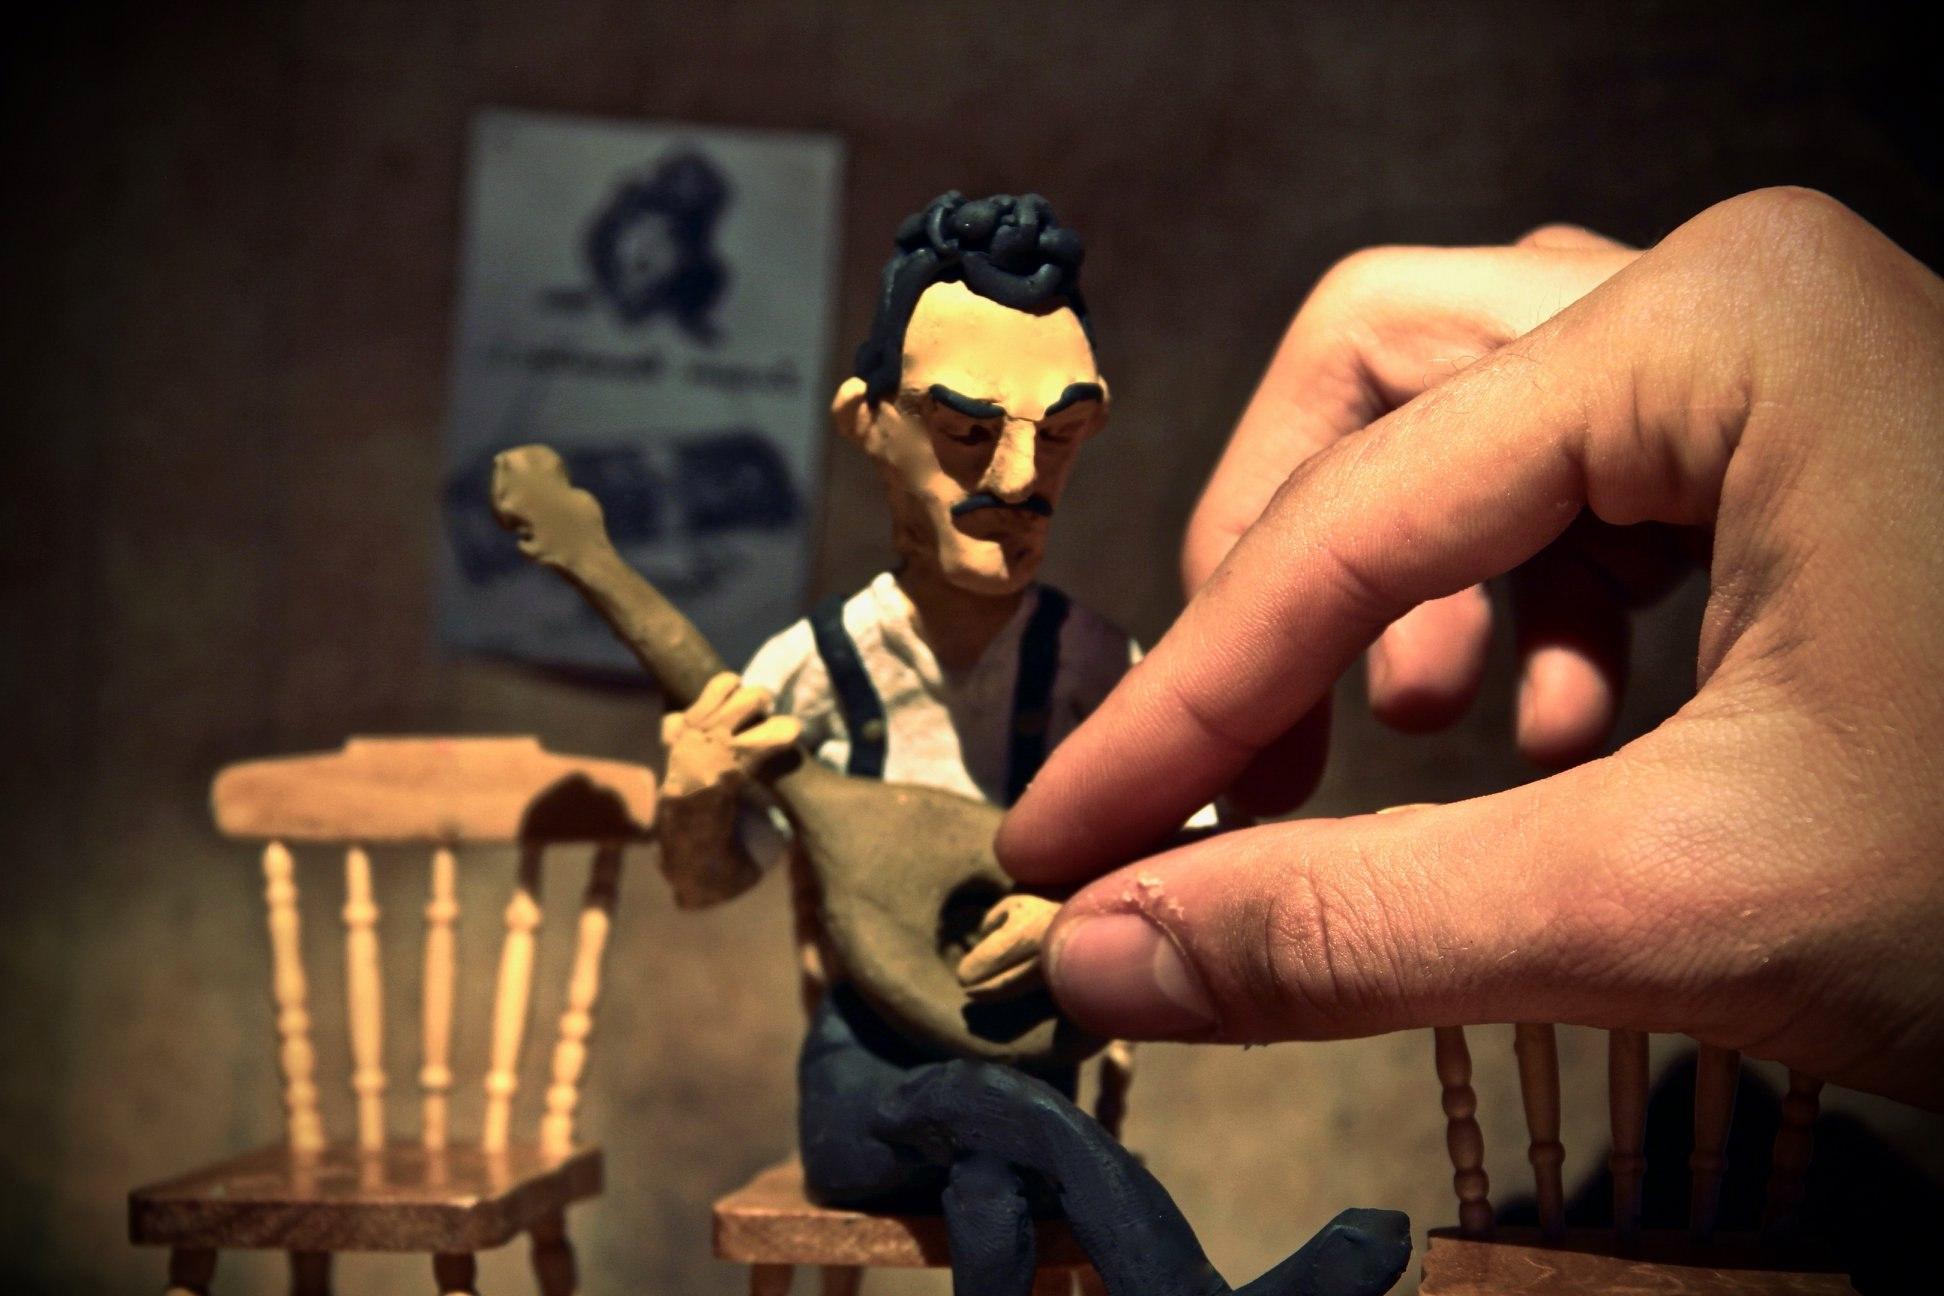 Remarkable Stop Motion Animation Brings Greece to Life